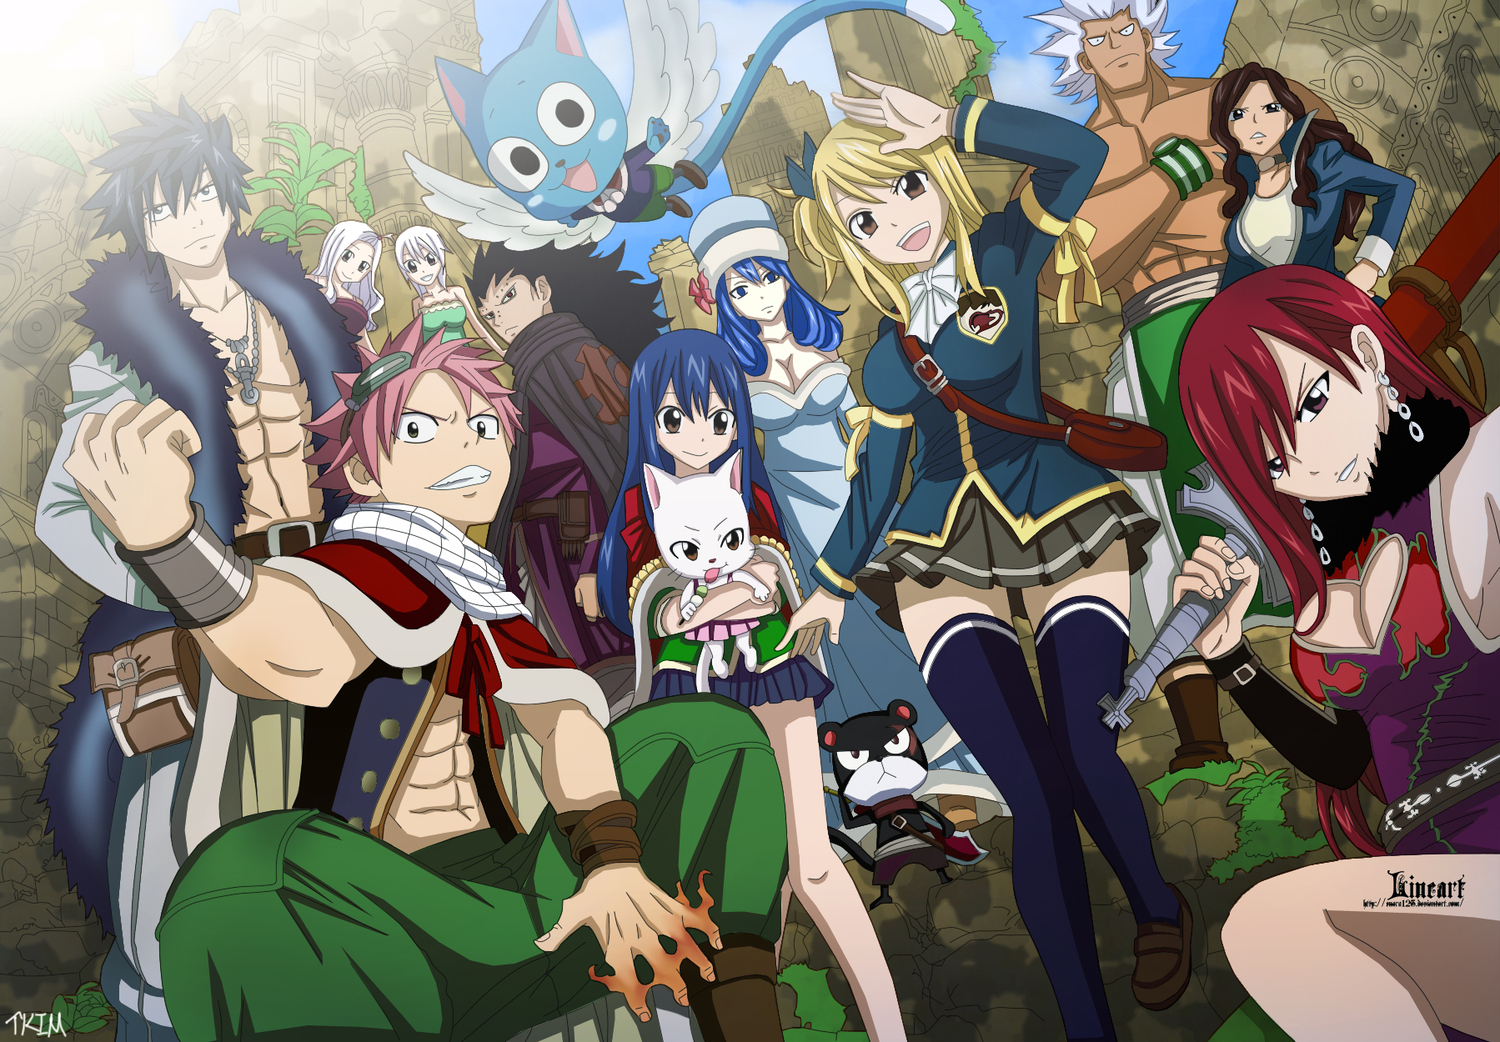 Fairy Tail Wallpaper PC Background 5989 Wallpaper Cool